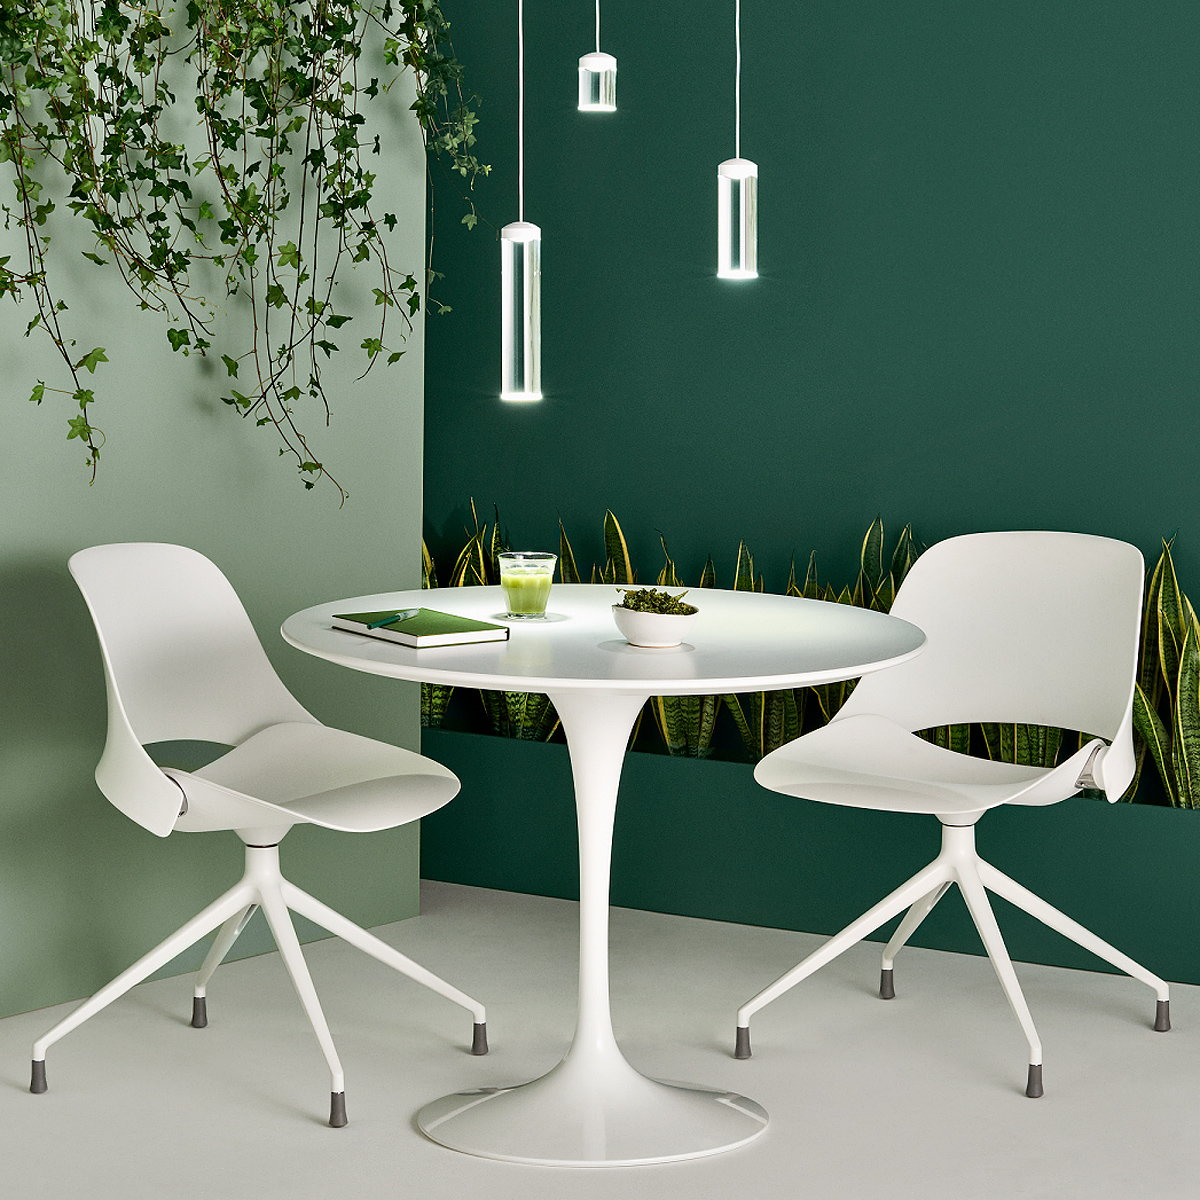 Humanscale RE:CHARGE Café by Todd Bracher